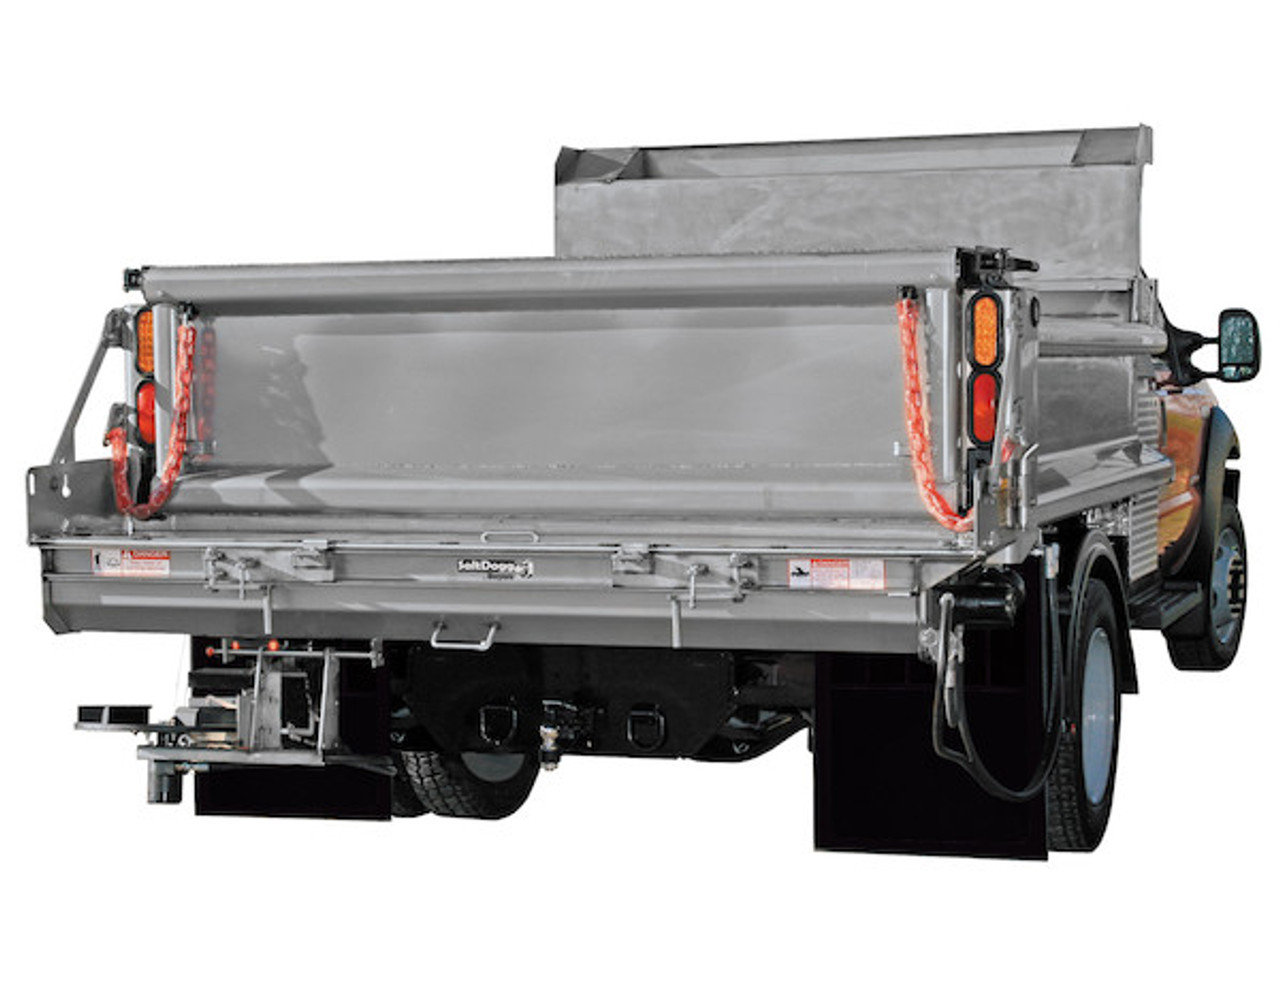 92421SSA BUYERS SALTDOGG HYDRAULIC UNDER TAILGATE SPREADER WITH EXTENDED END PLATES WITH STANDARD DISCHARGE PARISSUPPLY PARIS SUPPLY SALT